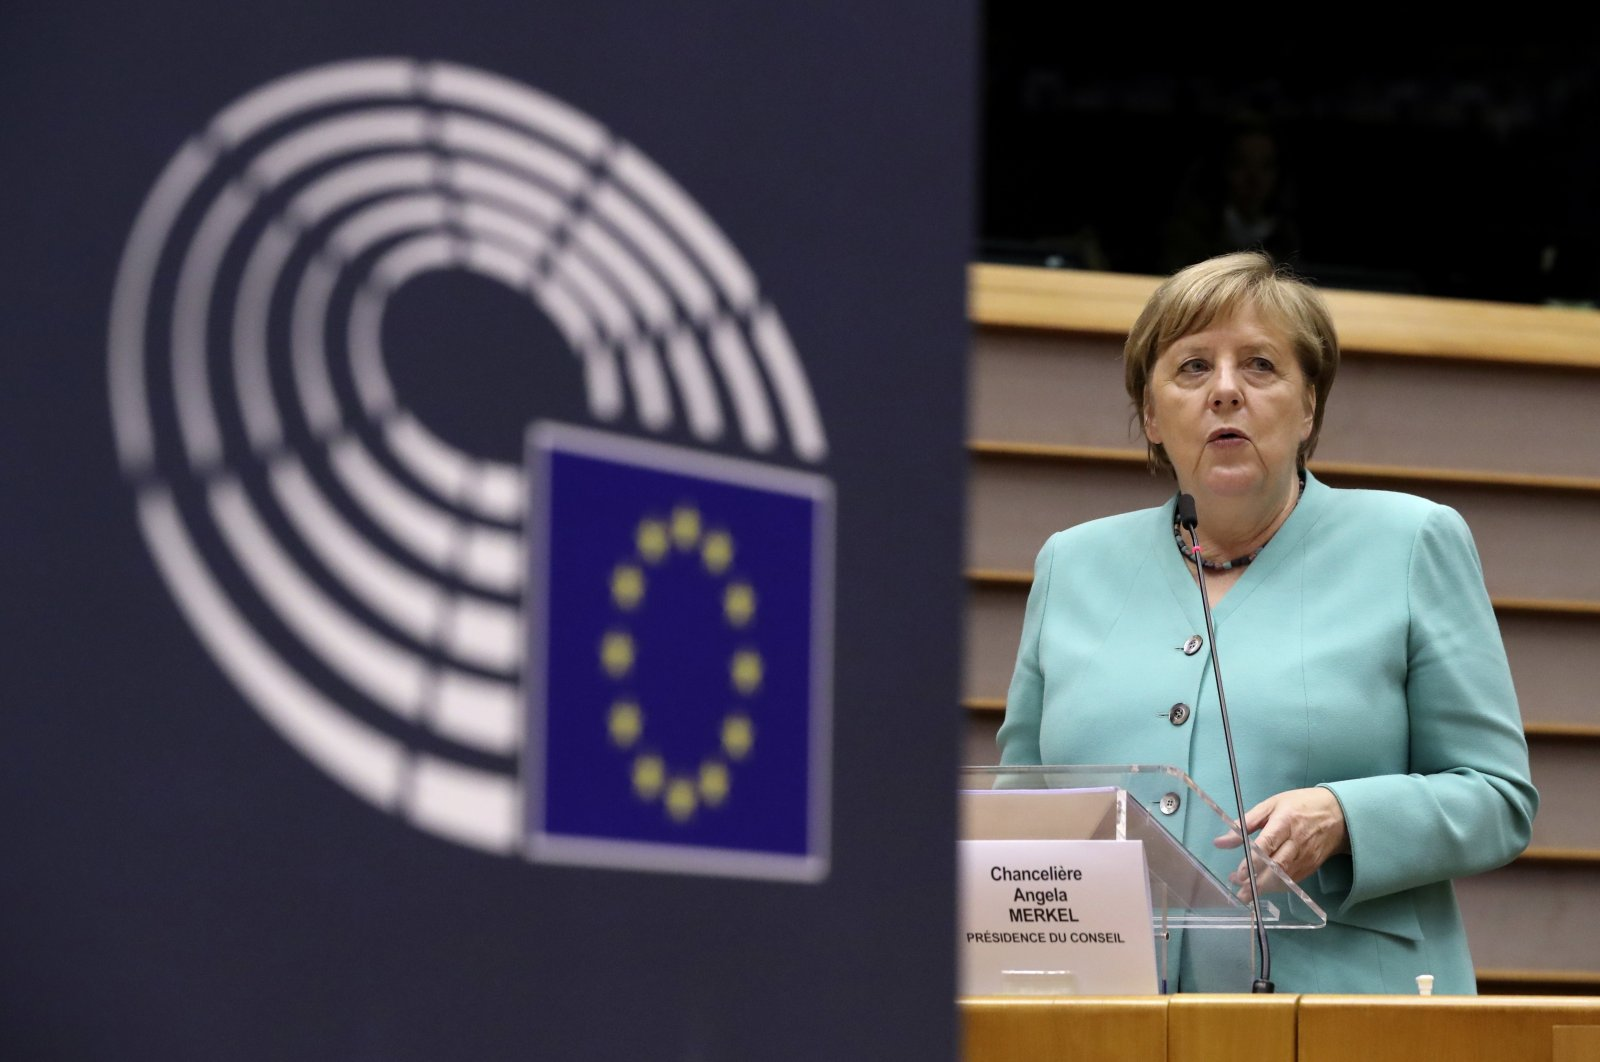 German Chancellor Angela Merkel addresses a plenary session at the European Parliament in Brussels, July 8, 2020. (AP Photo)